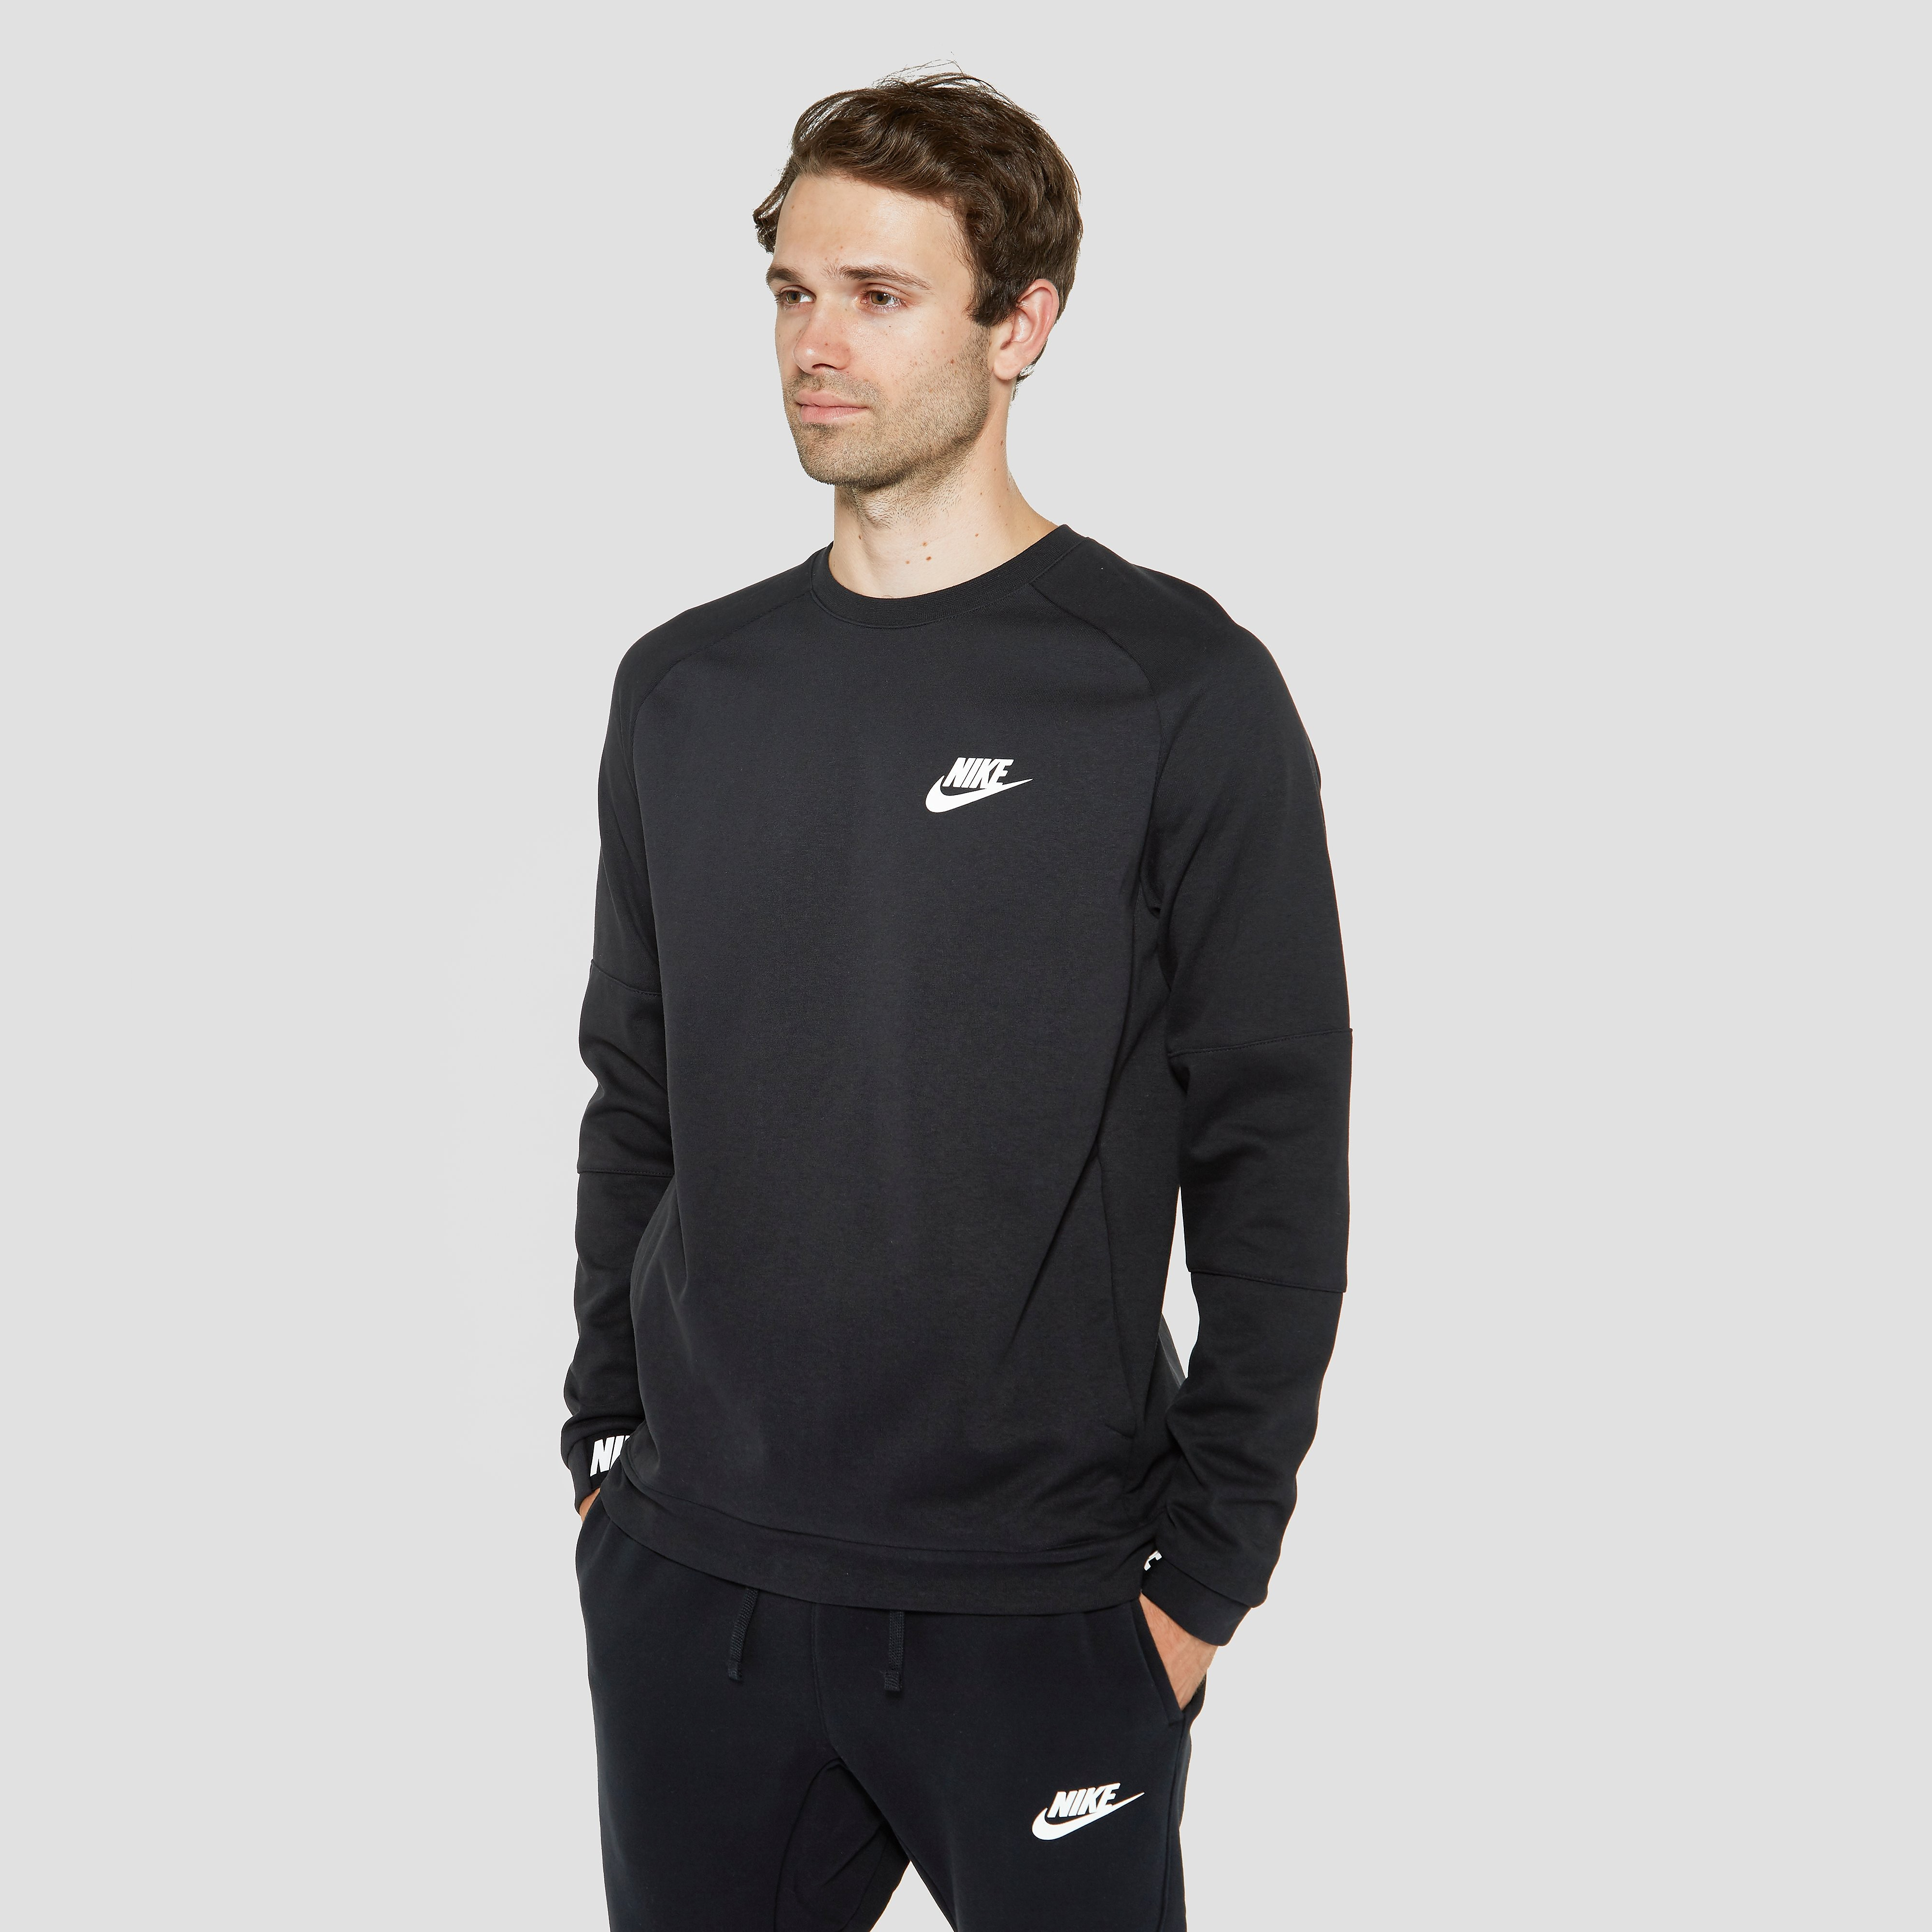 NIKE SPORTSWEAR AV15 CREW FLEECE SWEATER ZWART HEREN